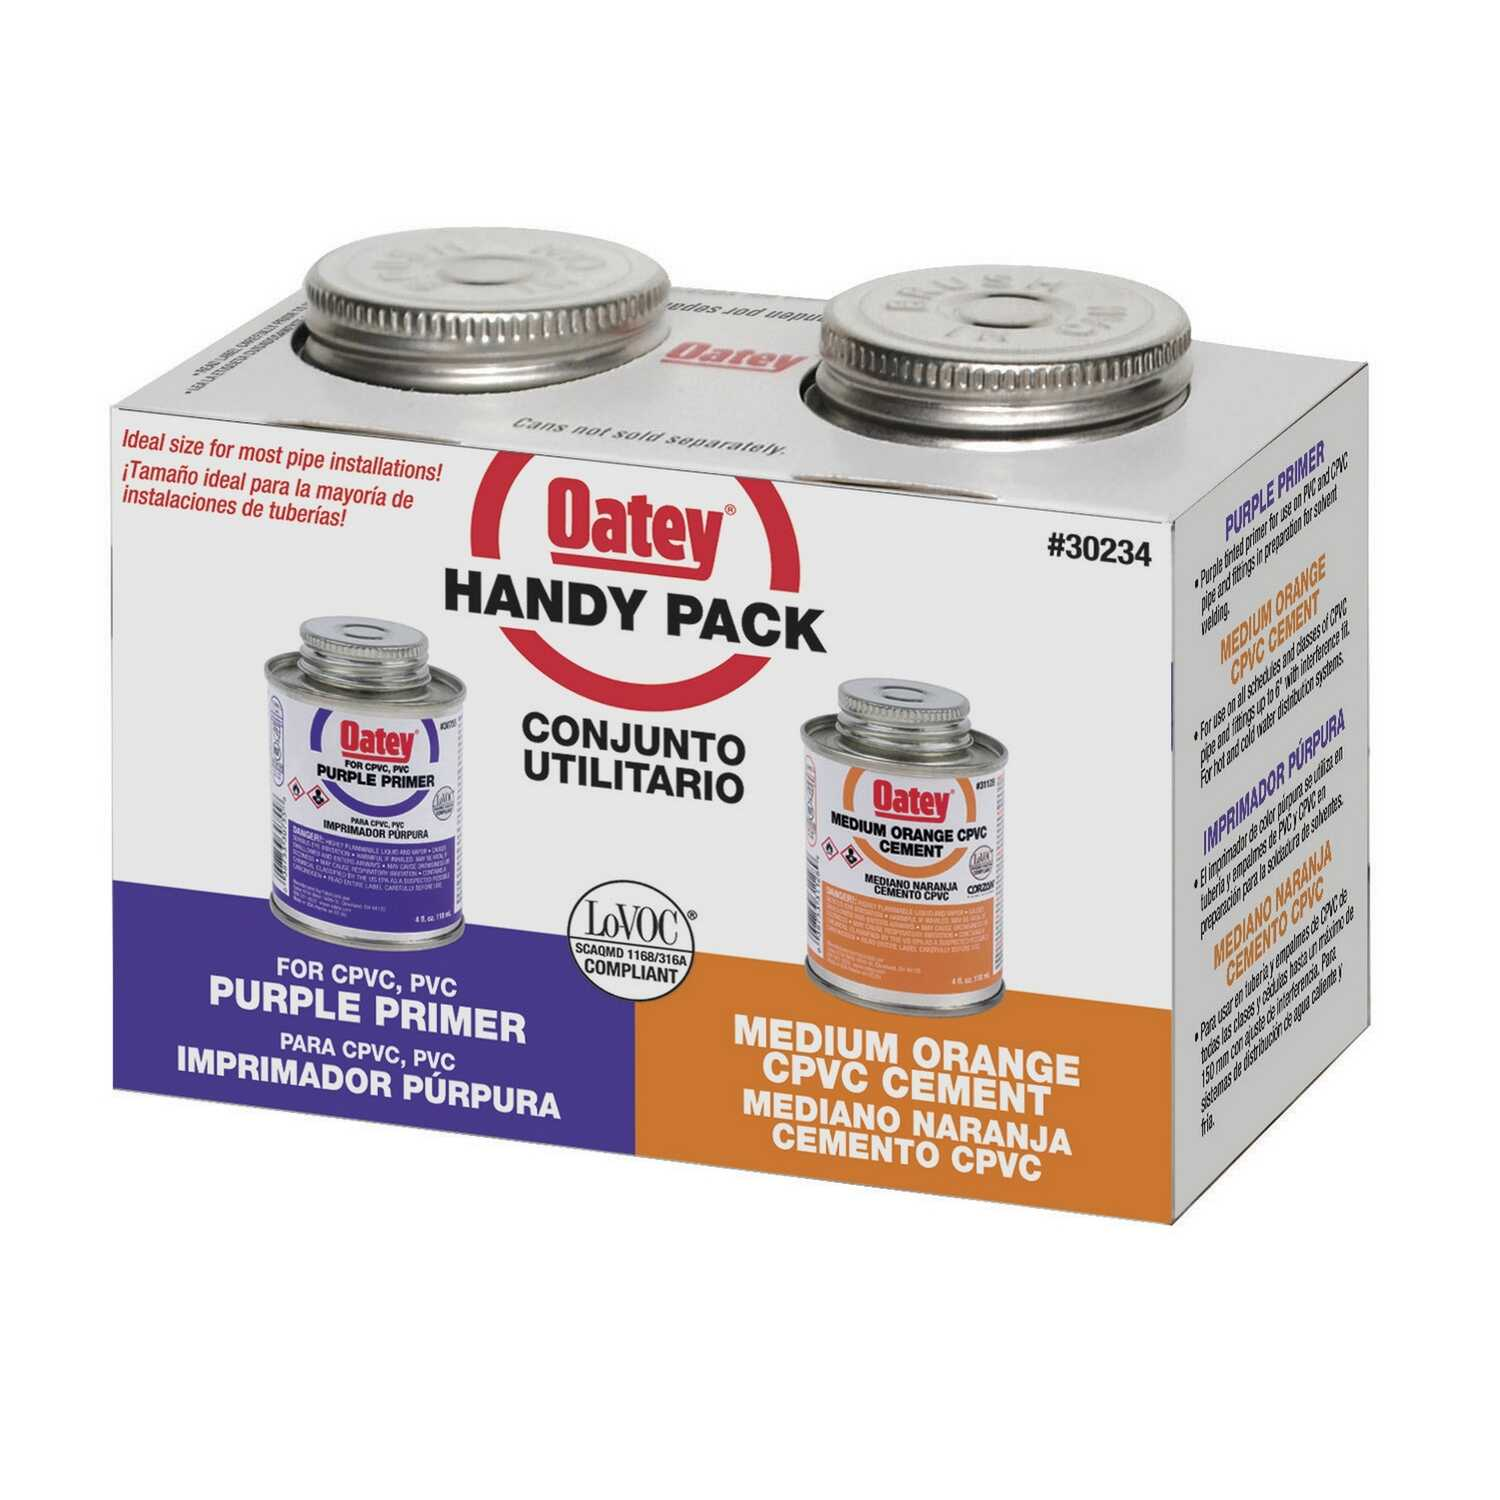 Oatey  Handy Pack  Orange  Primer and Cement  For CPVC 4 oz.